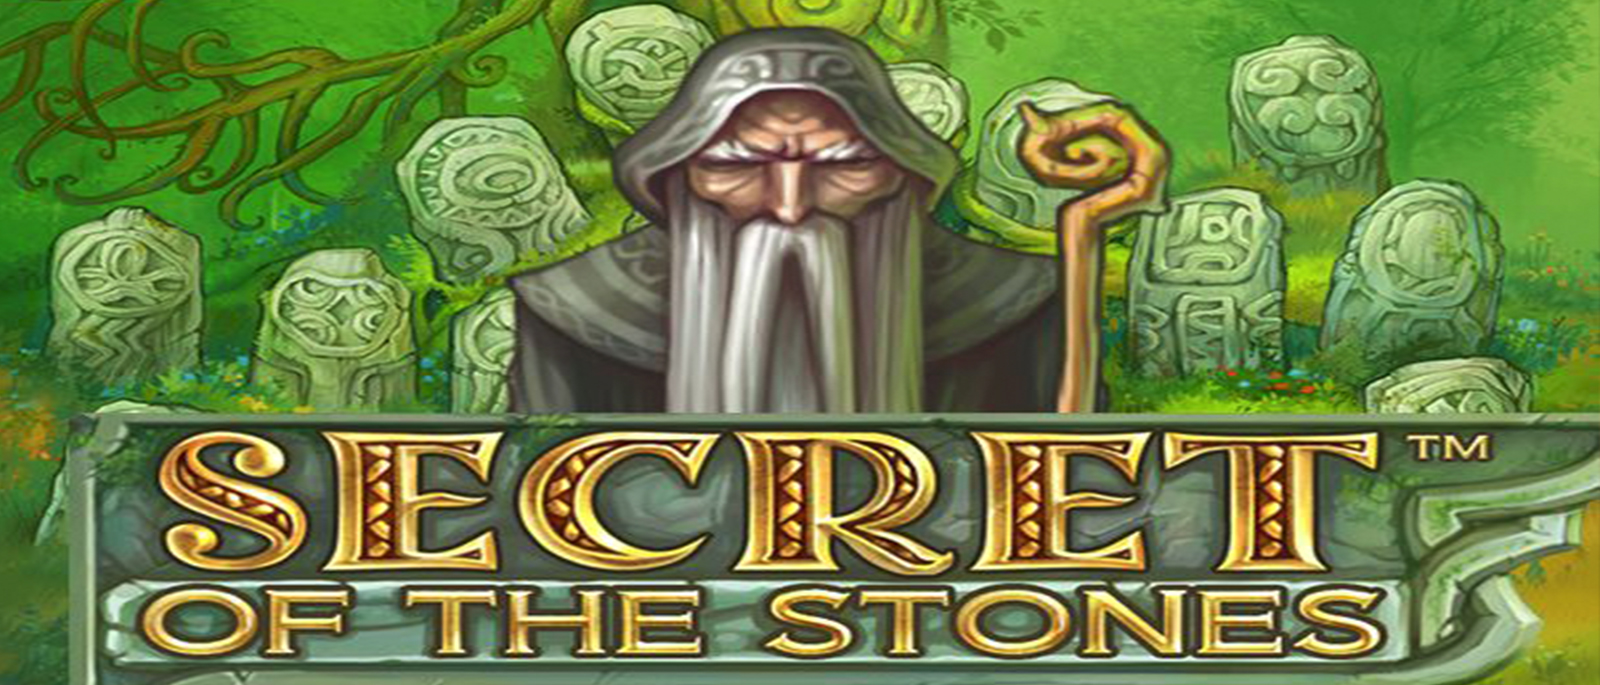 Secret of the stones Net Entertainment Slot Spiel